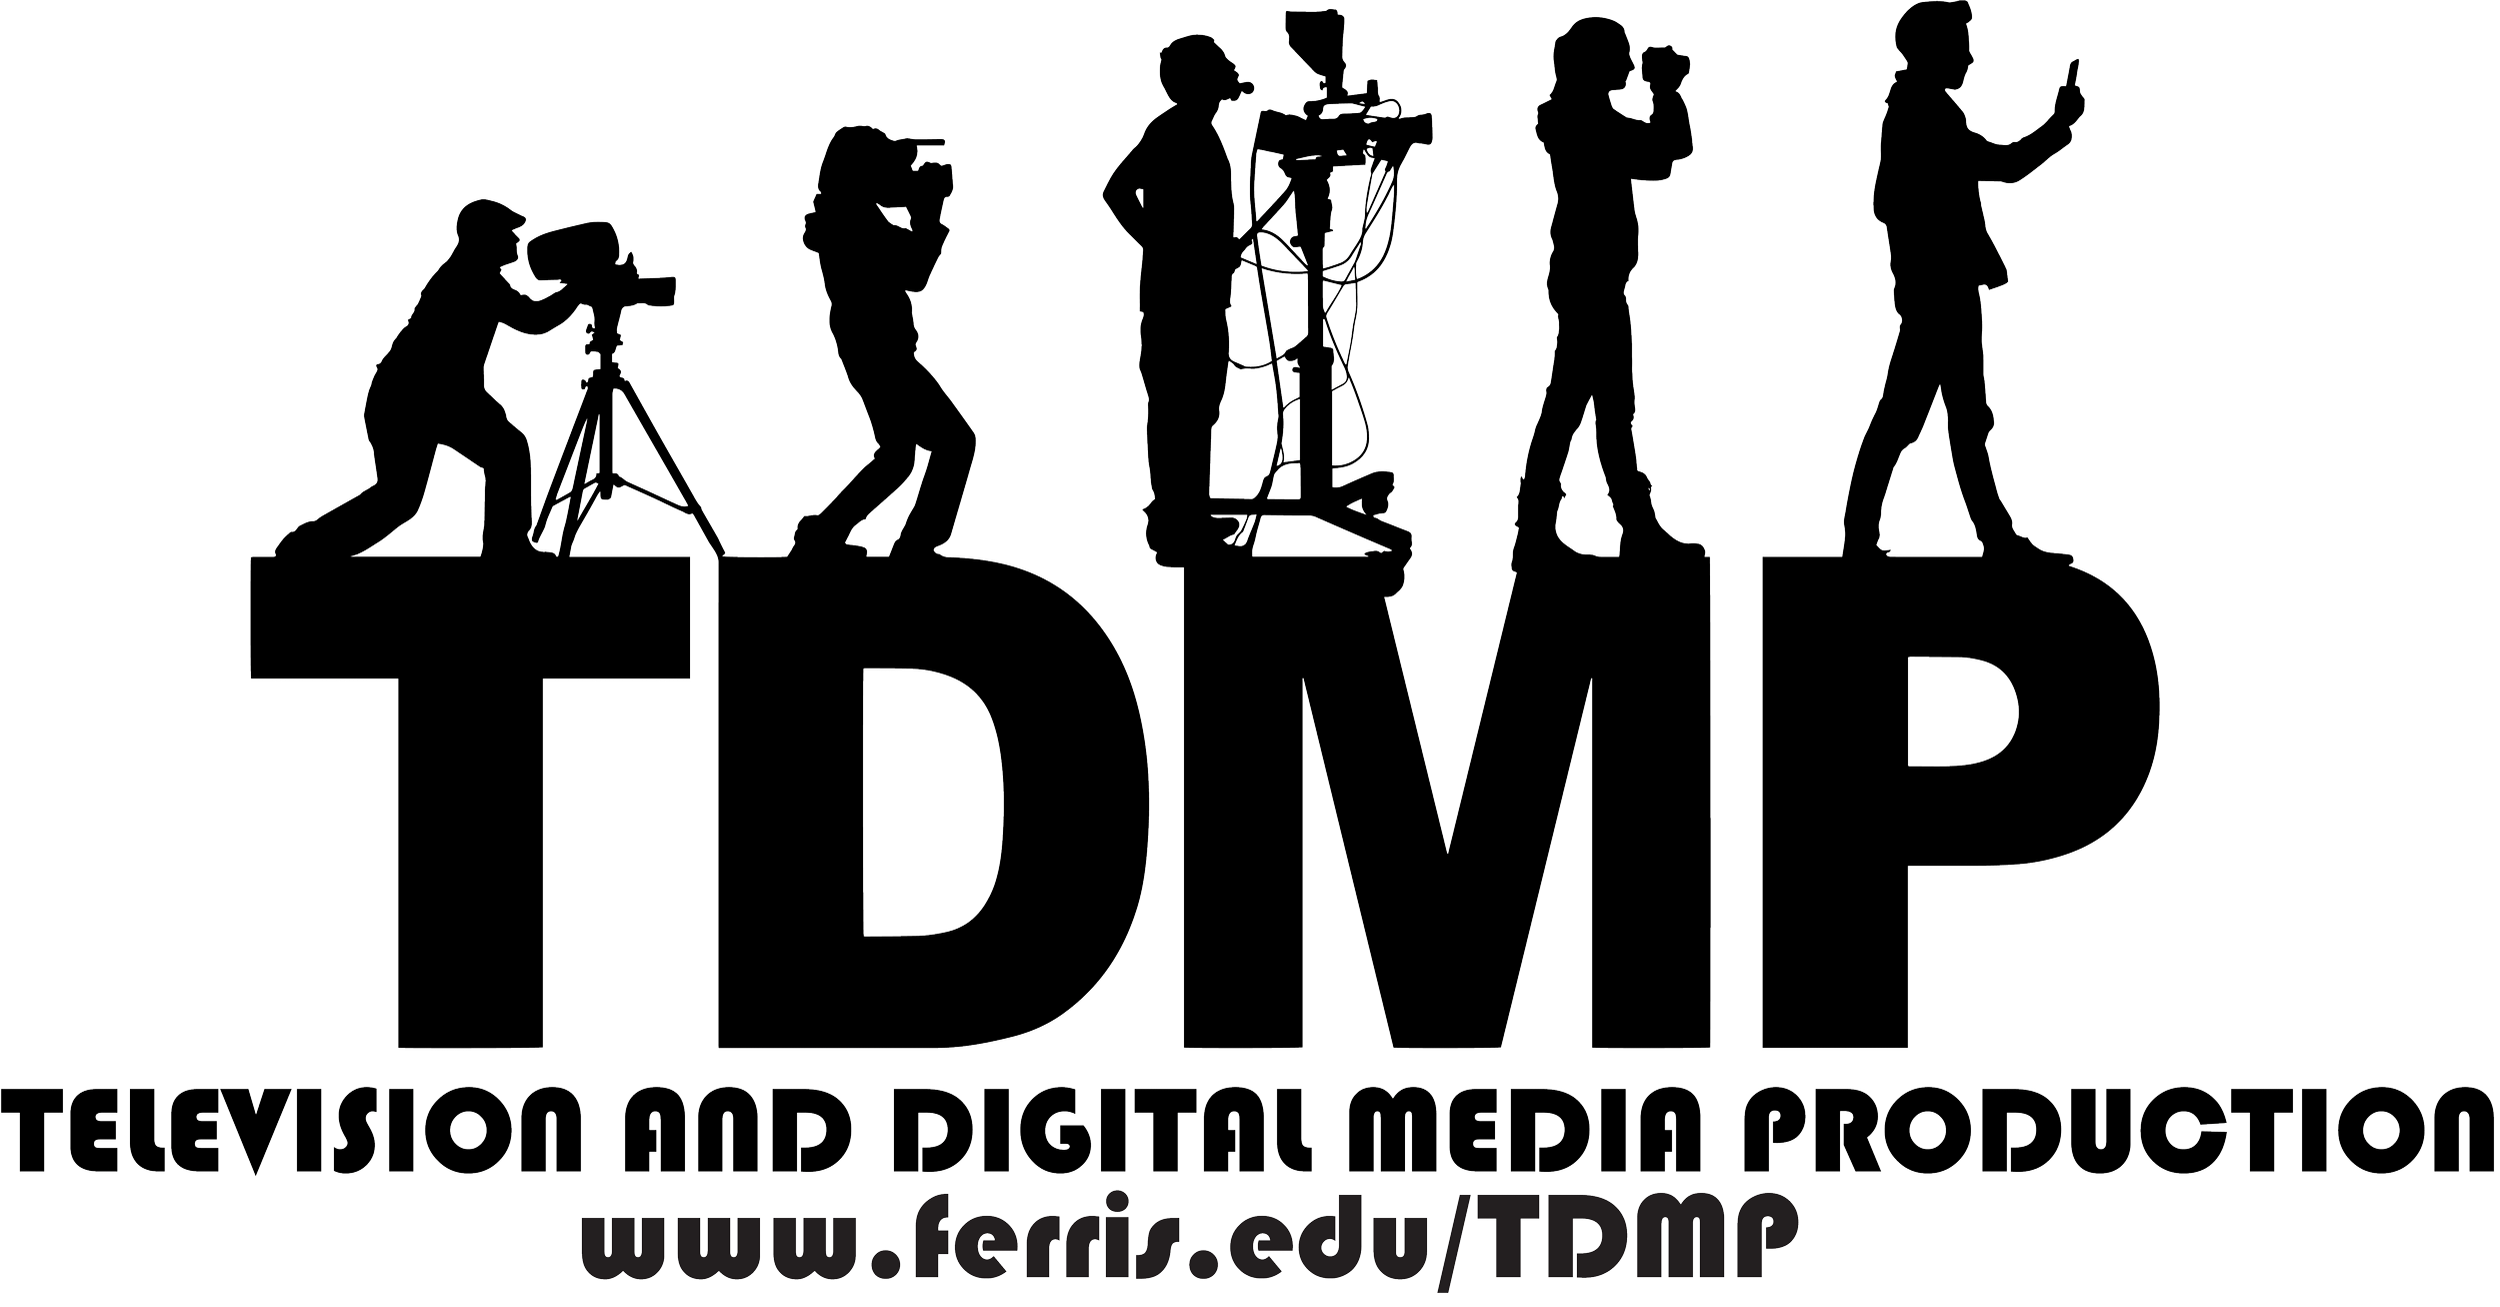 Television and Digital Media Production (TDMP)